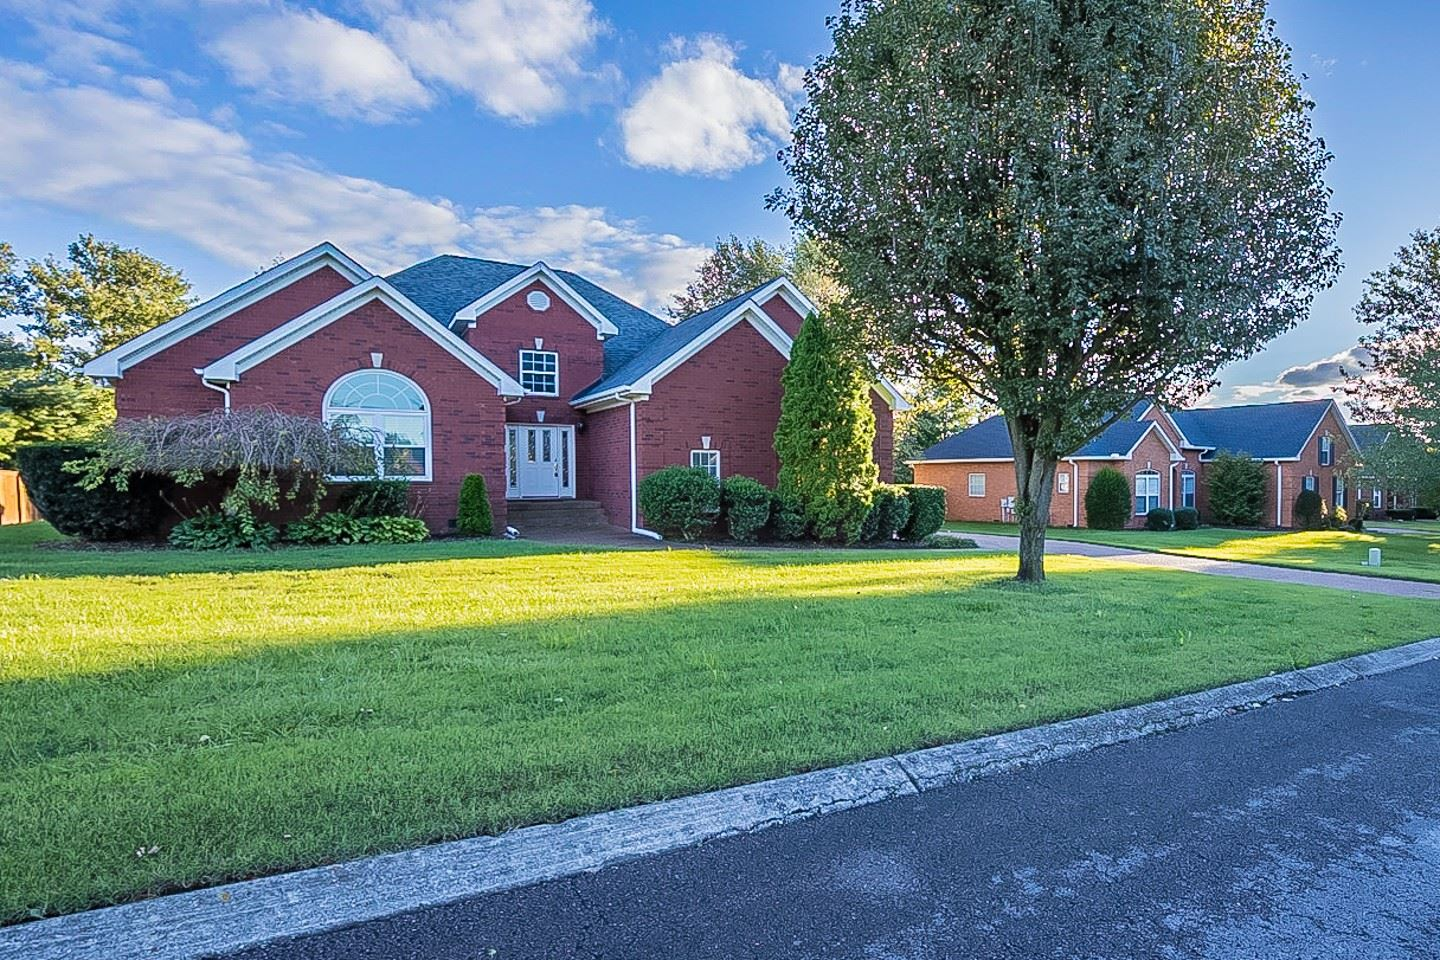 Photo of 3009 Liverpool Dr, Thompsons Station, TN 37179 (MLS # 2295244)